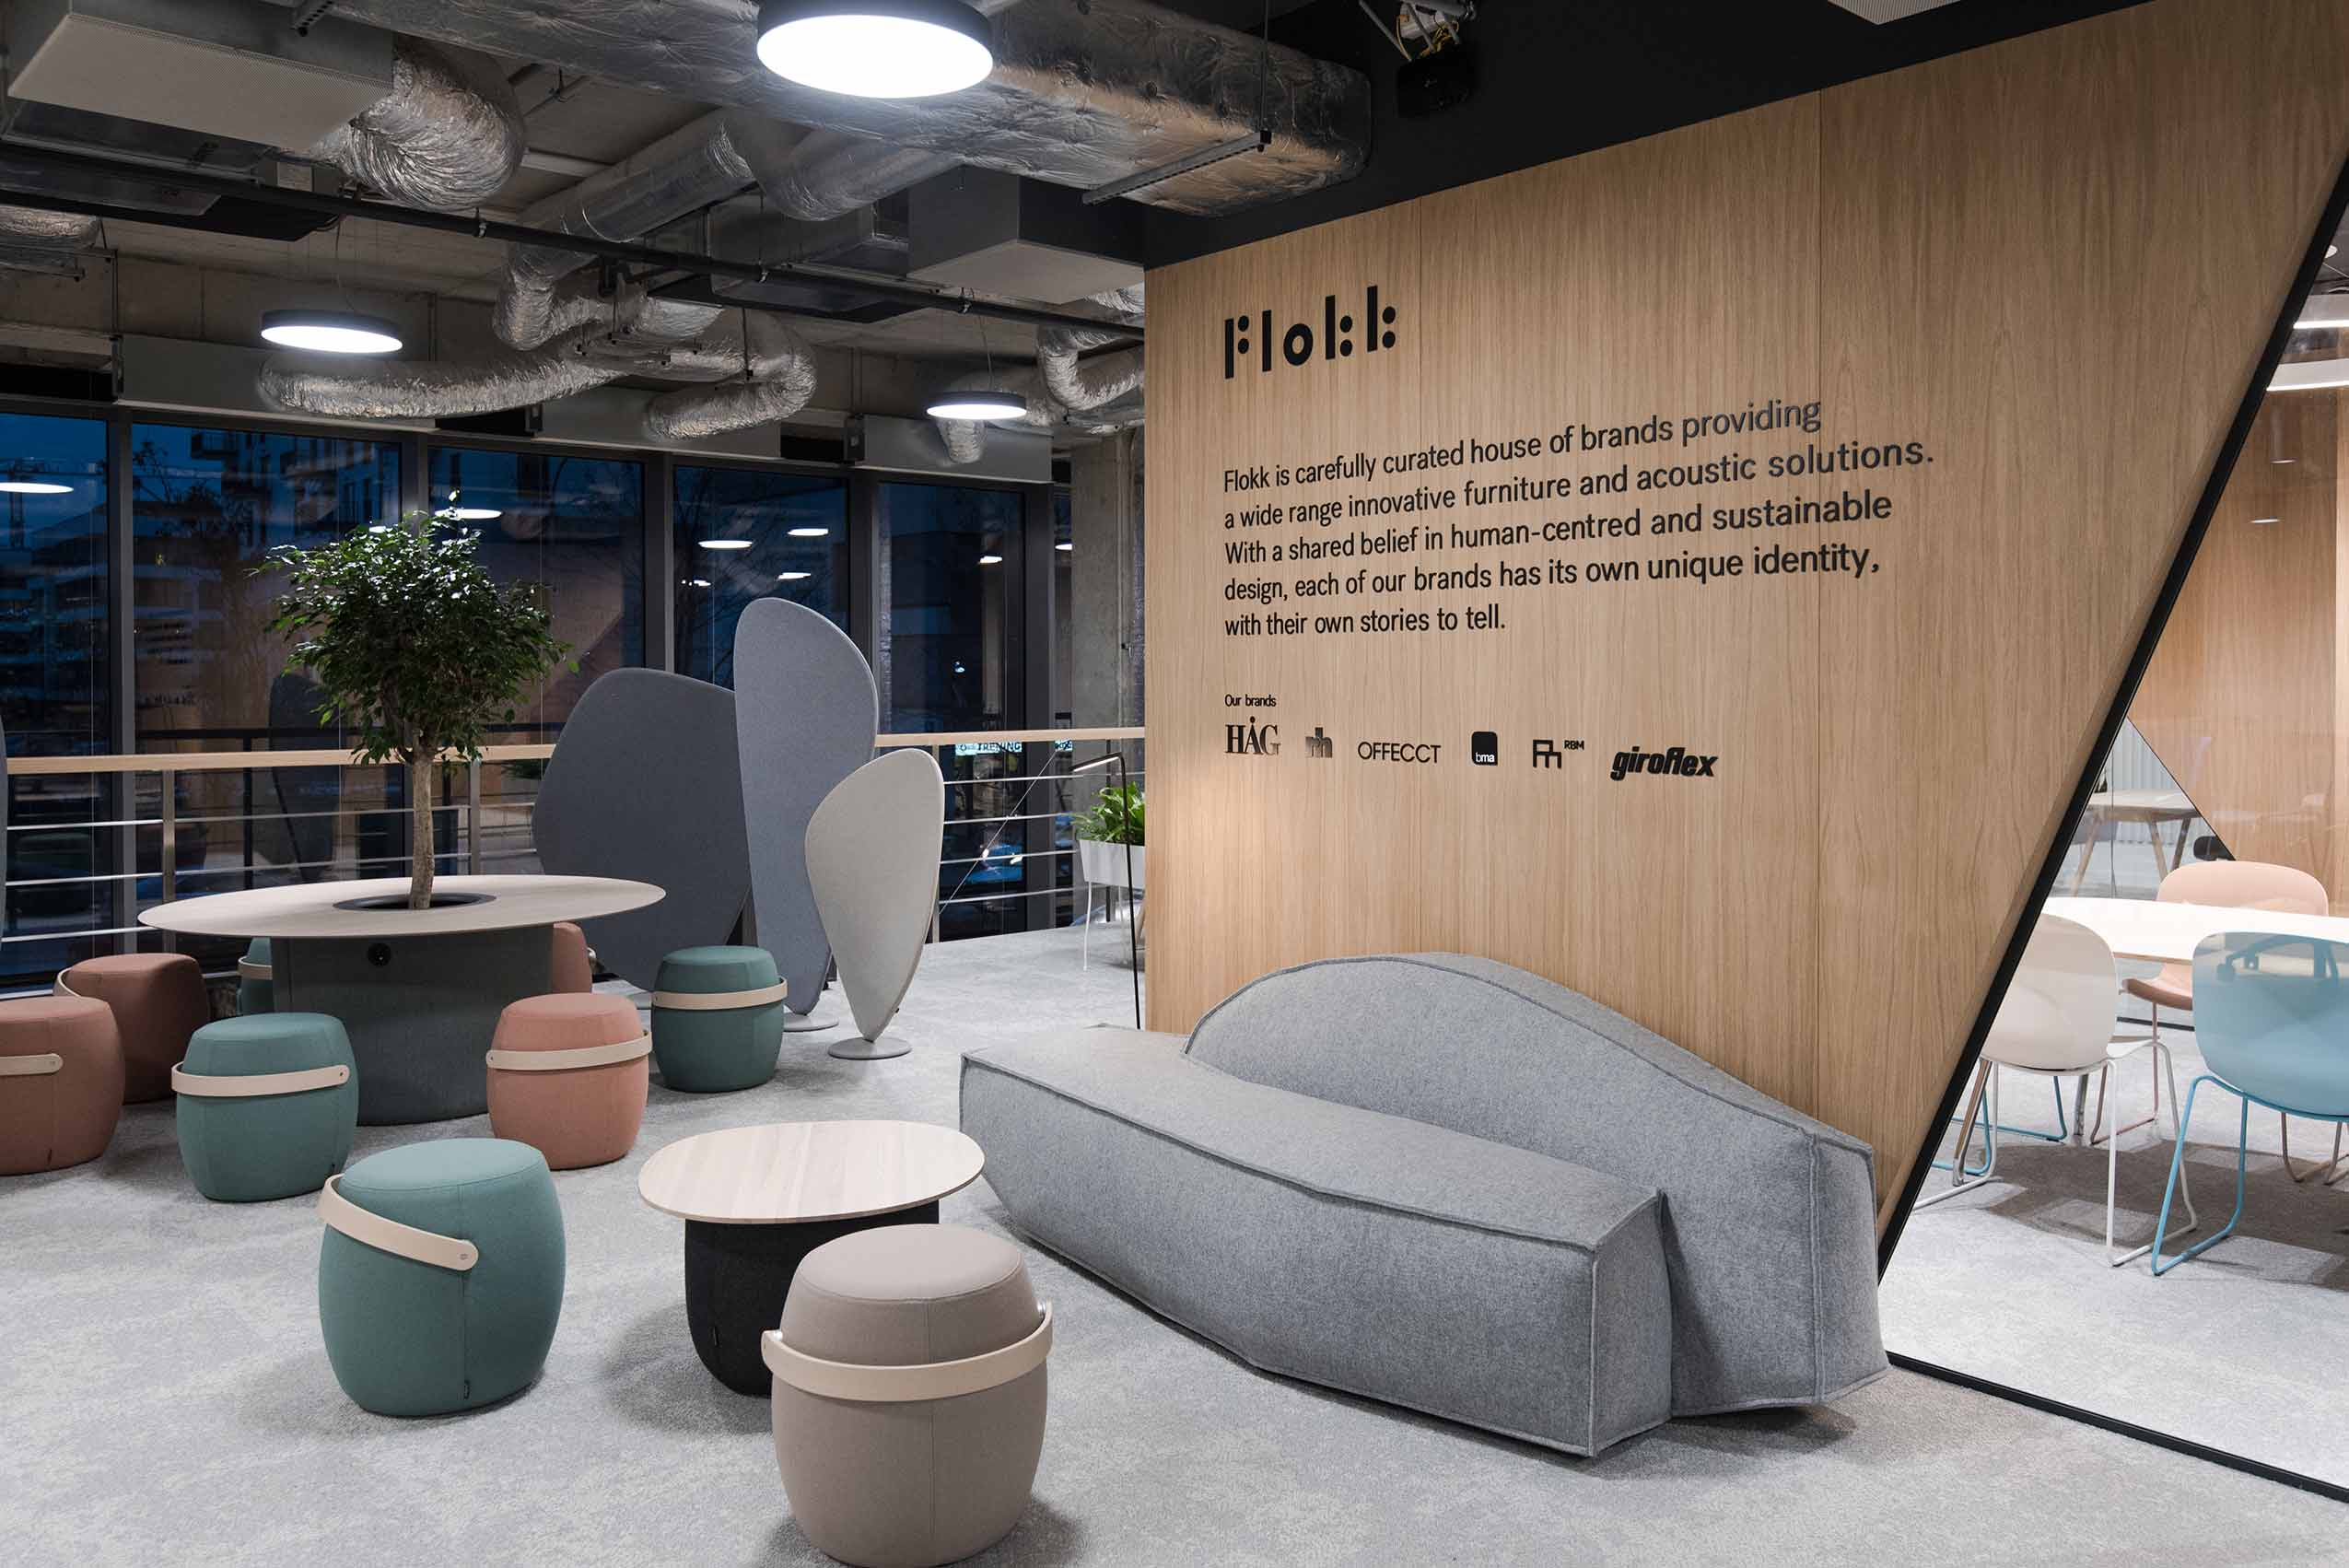 Flokk furniture showroom in poland warsaw scandinavian design led interior architecture grey offecct carry on stool and sofa